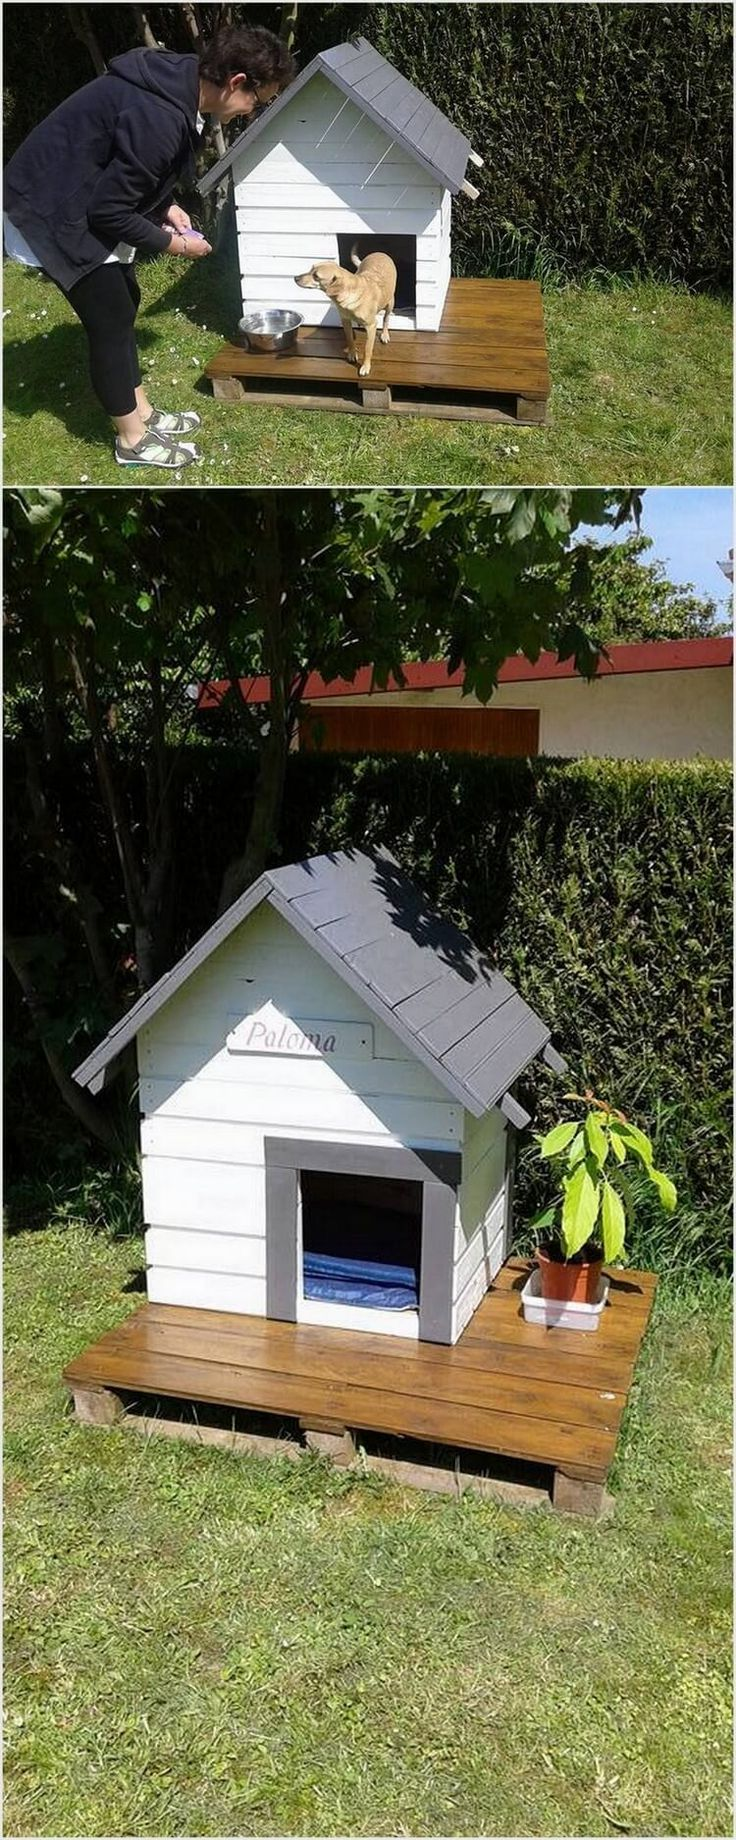 On our list we have shipping pallet dog house. This idea is perfect if you want to give your pet dog with the best house living in a comfort zone. If you don't like the entrance of the dogs inside the house, then be sure that you design a simple and yet a comfortable wood pallet house for them in the garden area.